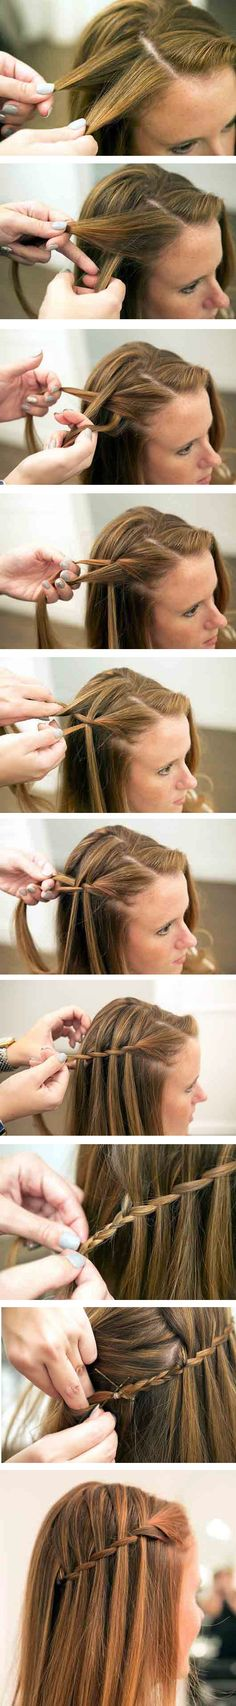 The Waterfall #Braid Tutorial – Step by Step #hairstyle #hairtutorial #hairtrends